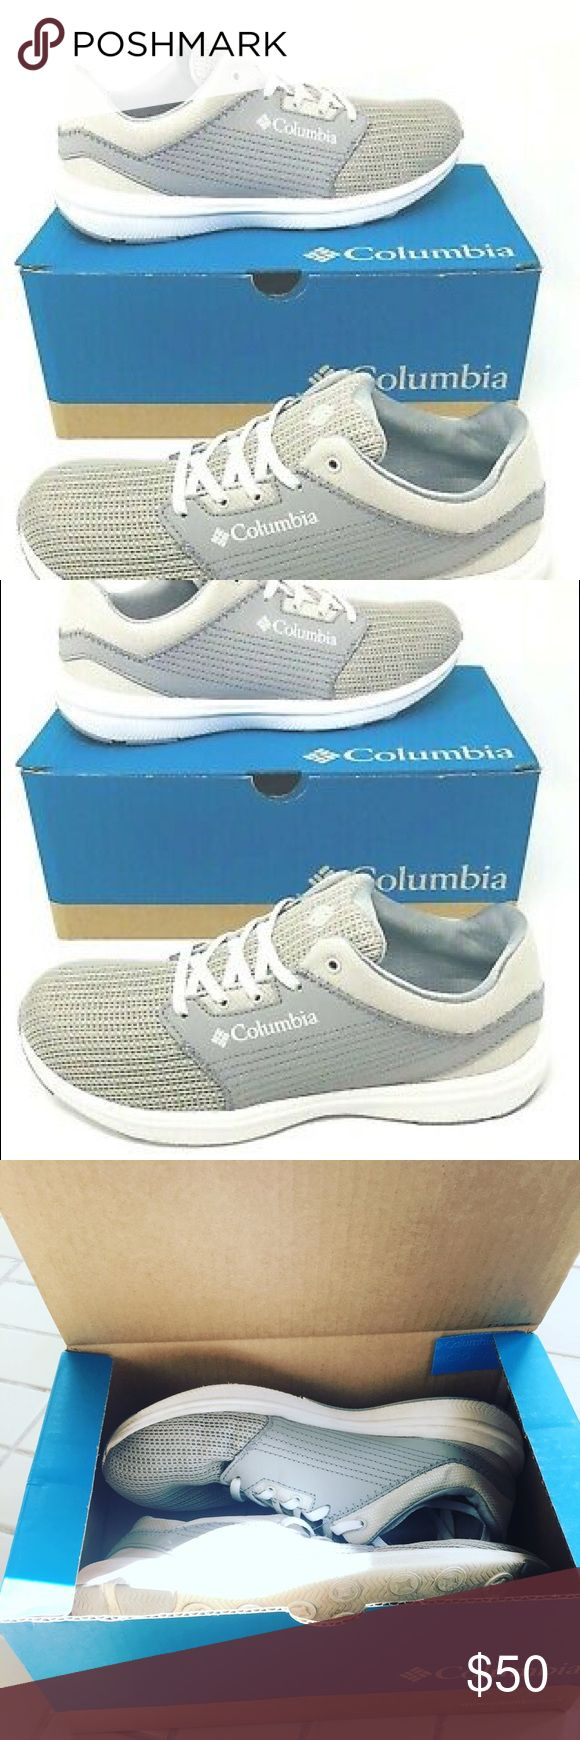 👟 Columbia Shoes 👟 Gently worn. Good condition and cleaned.  Always Smoke …